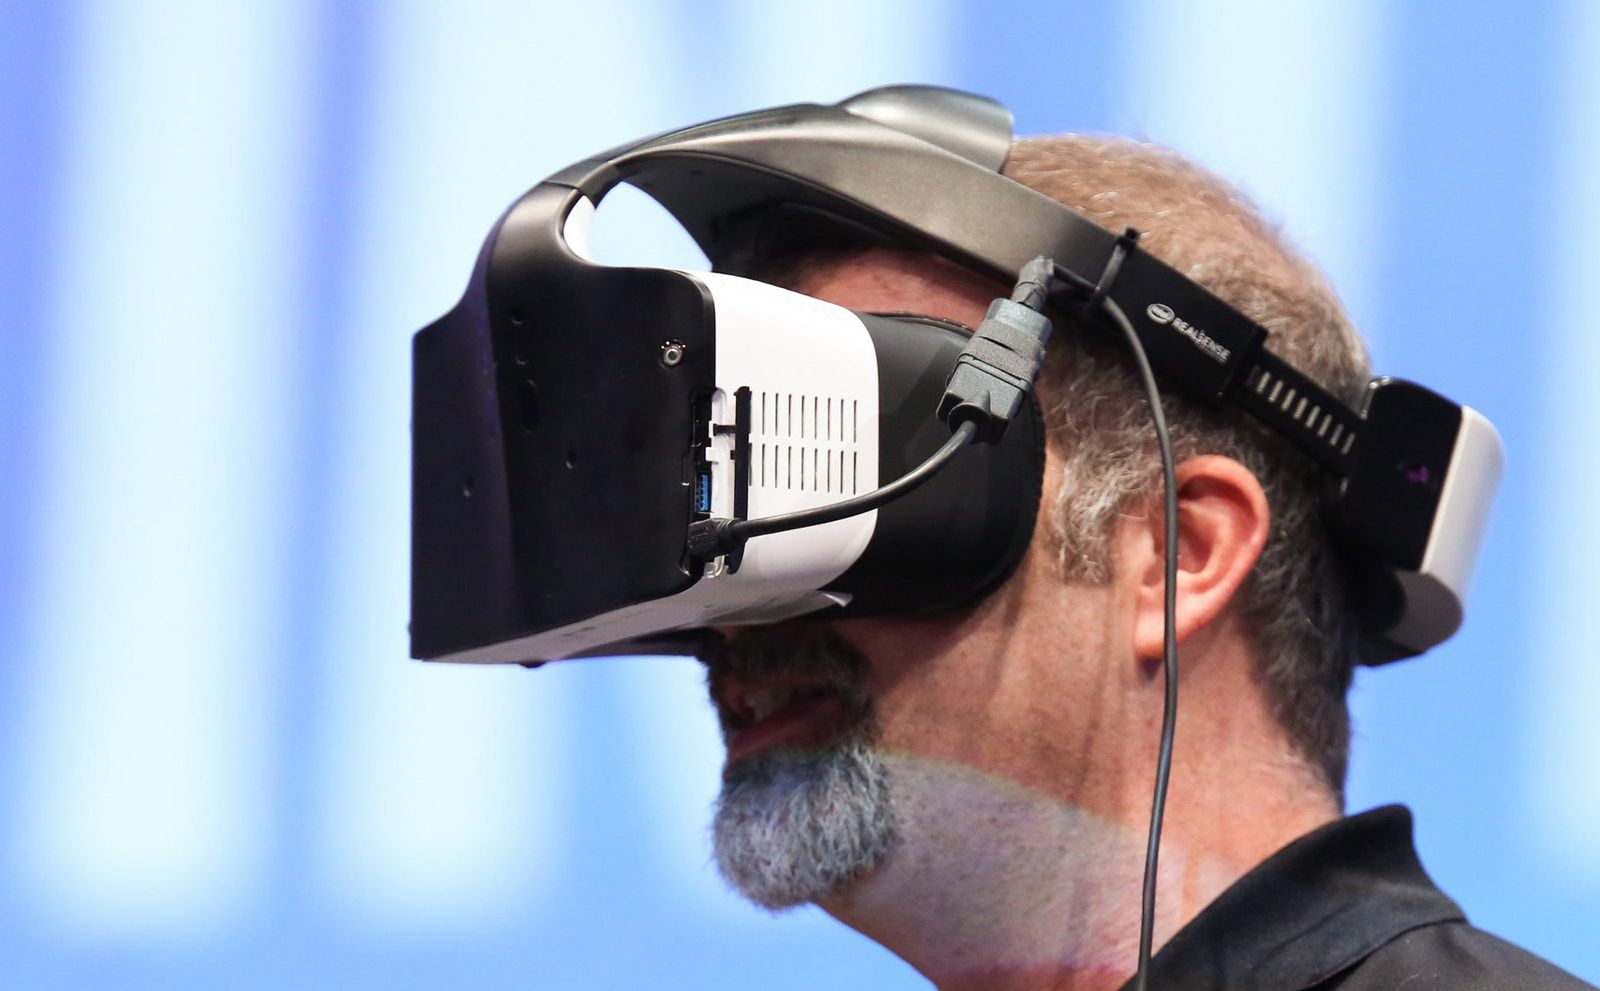 Intel presents virtual reality headset Project Alloy